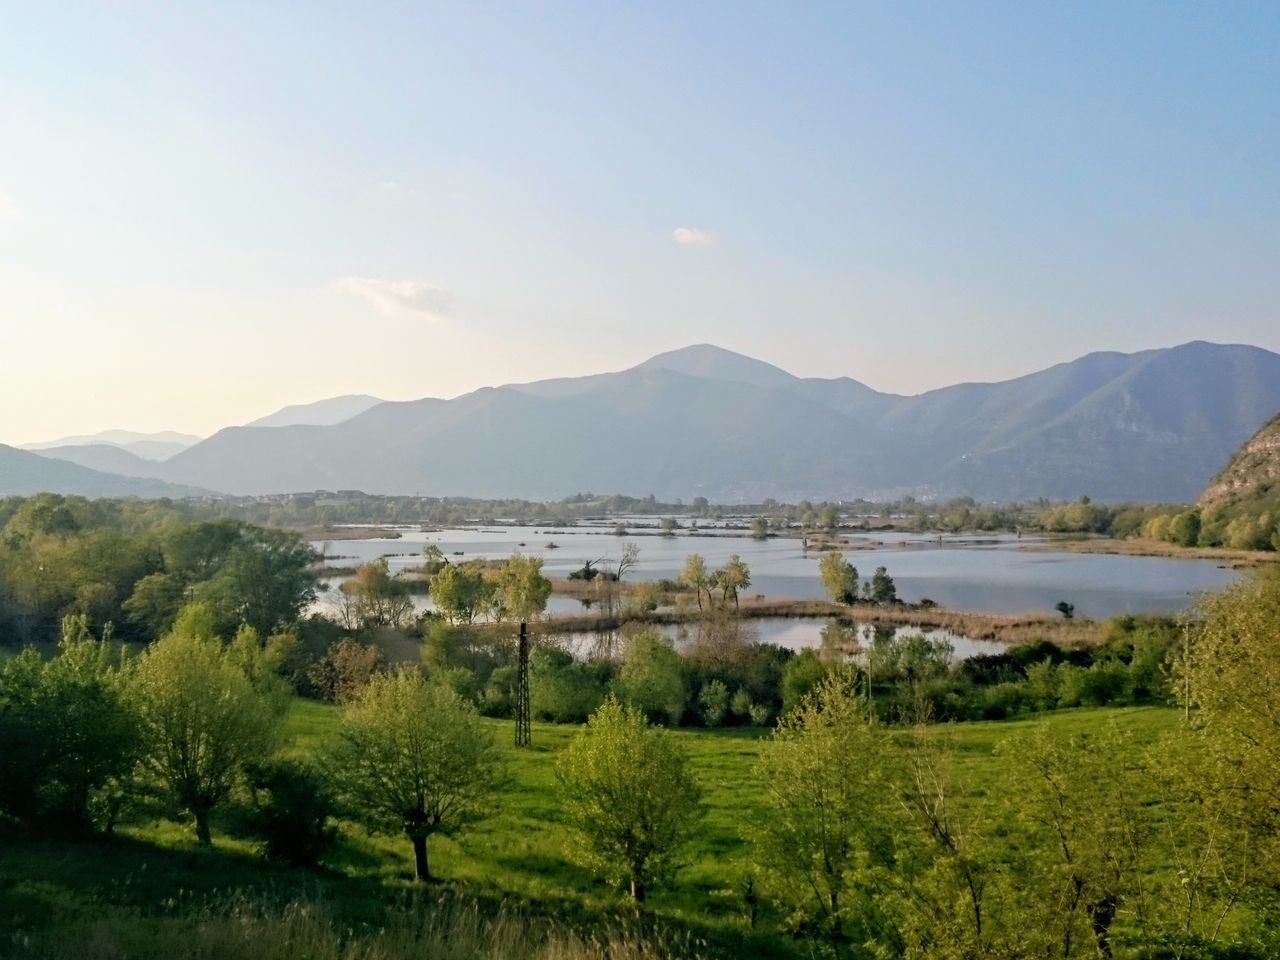 Beauty In Nature Day Field Grass Iseo Iseo Lake Lake Lake Of Iseo Landscape Mountain Mountain Range Nature No People Outdoors Scenics Sky Torbiere Torbiere Del Sebino Tranquil Scene Tranquility Tree Water